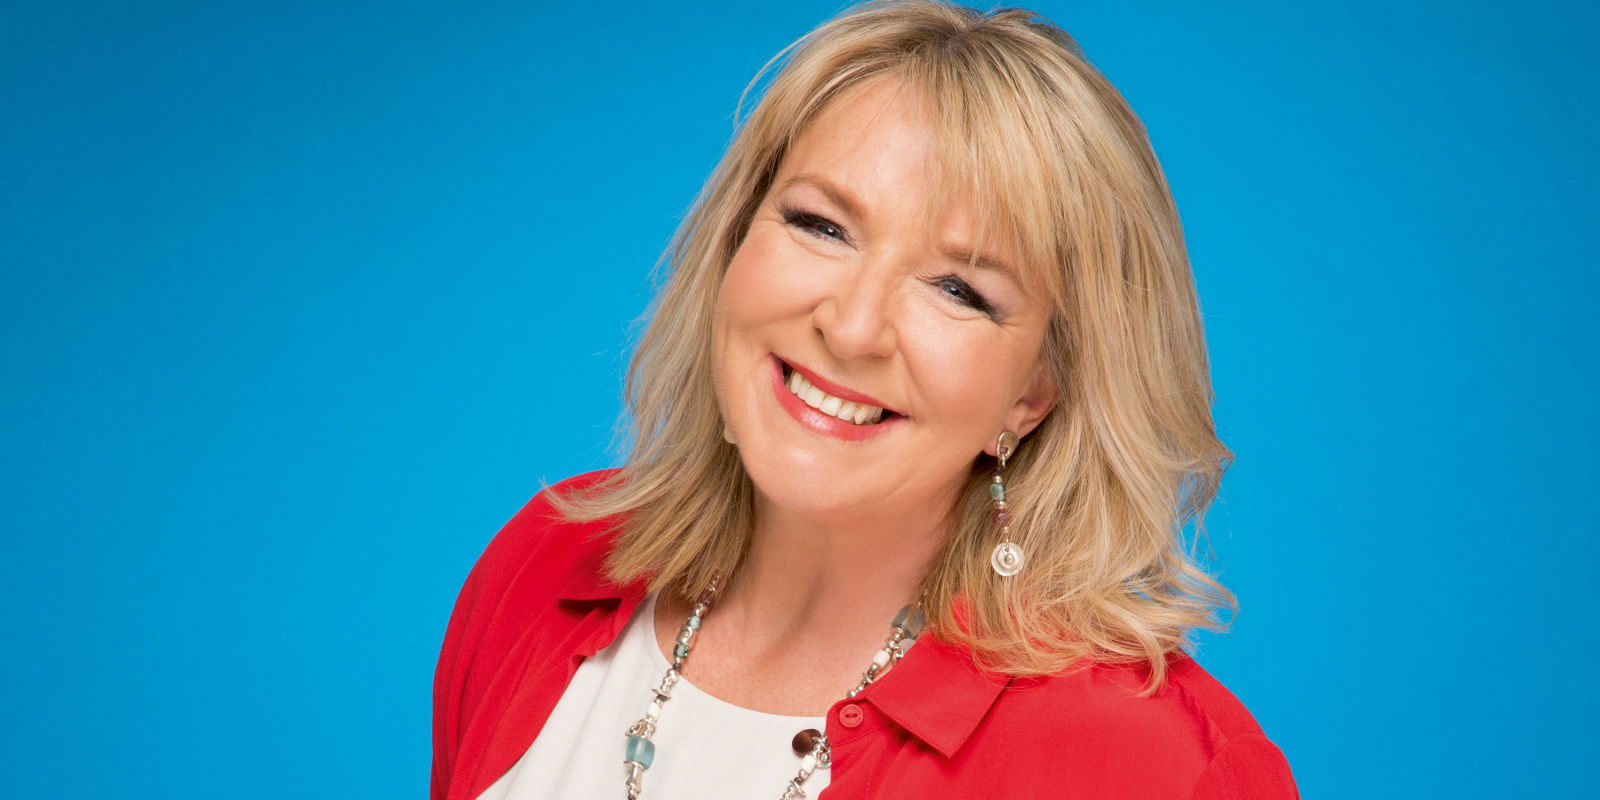 Fern Britton Reveals She Almost Died From Sepsis And